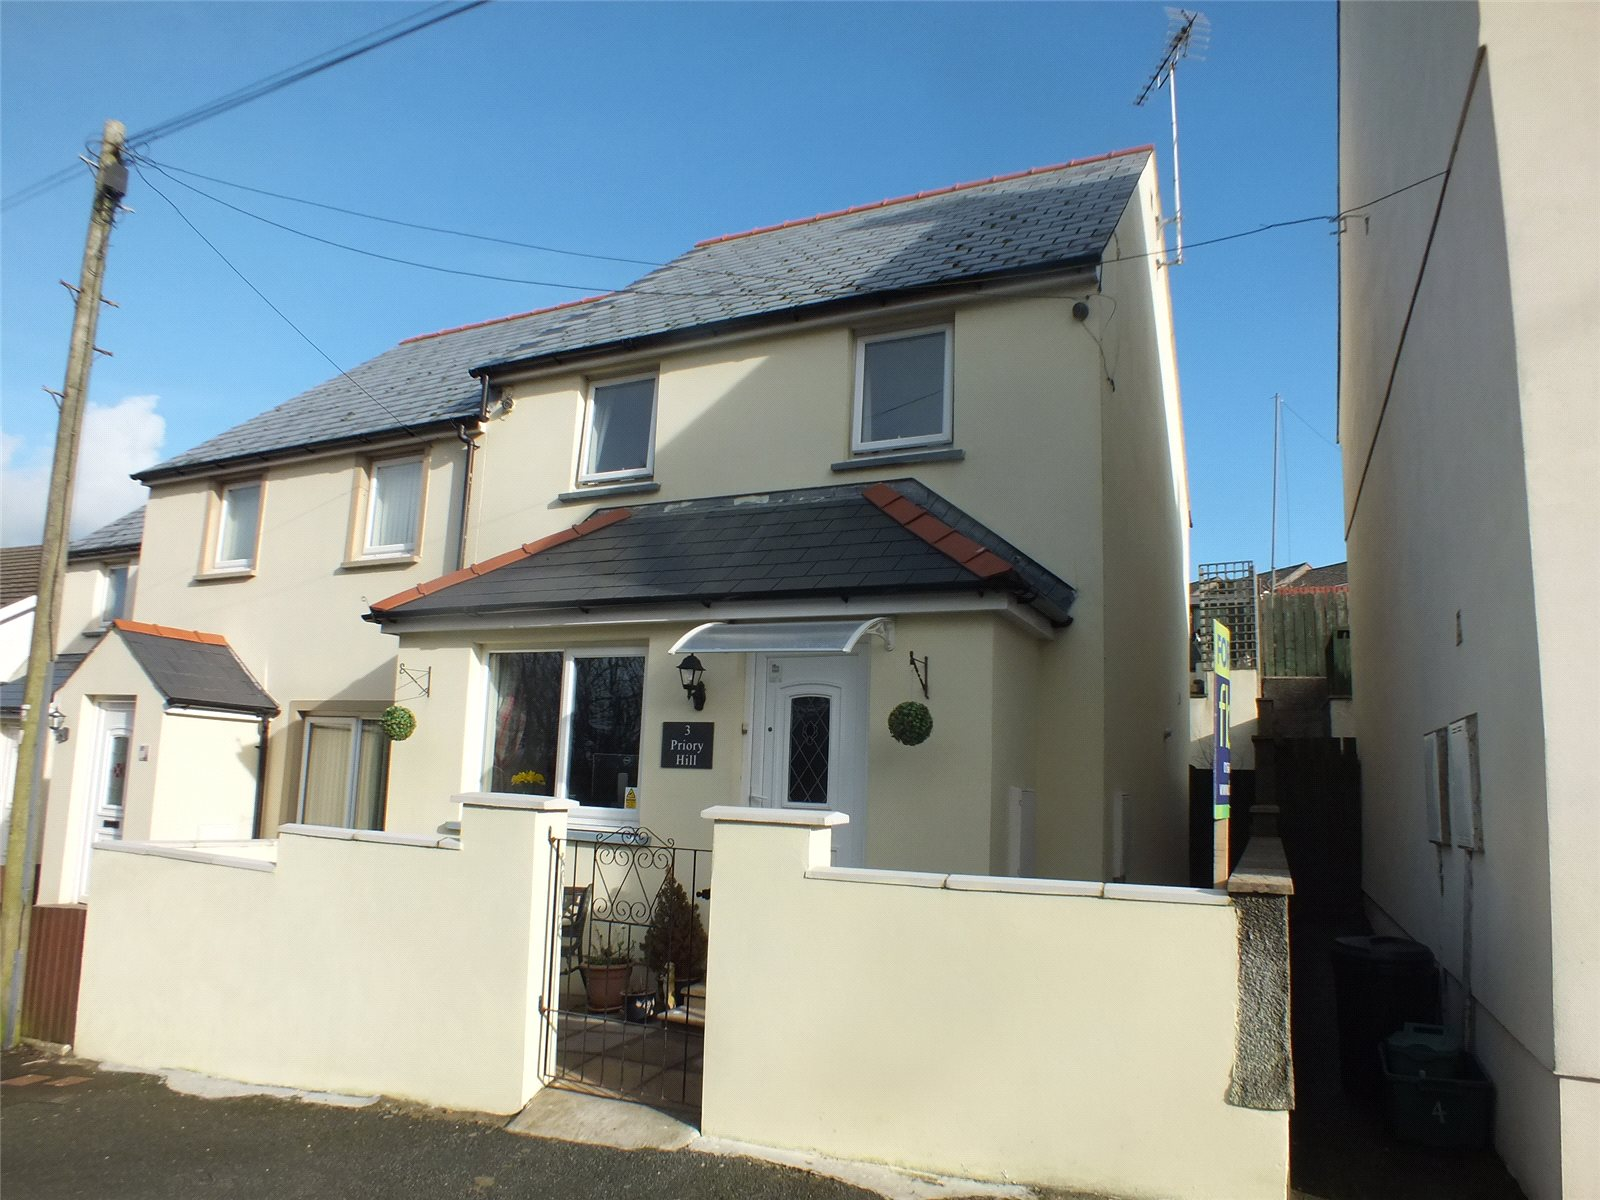 3 Bedrooms End Of Terrace House for sale in Priory Hill, Milford Haven, Pembrokeshire